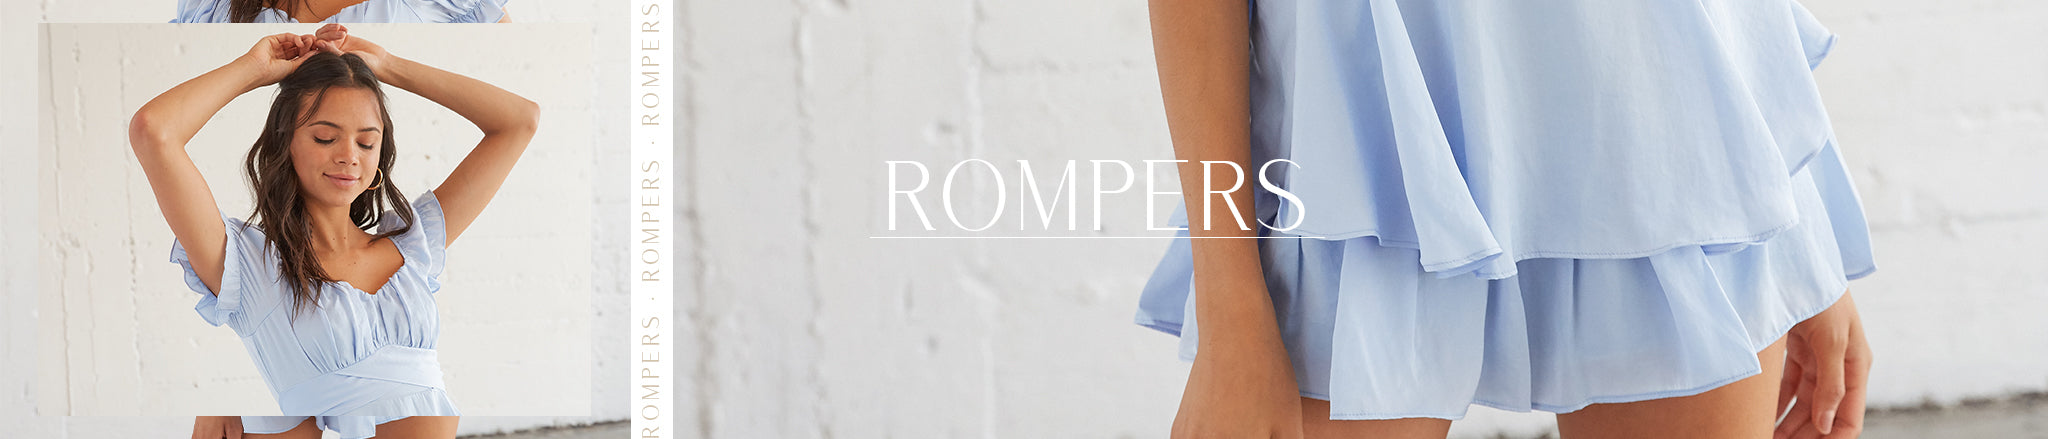 Rompers featuring a light blue sweetheart neckline romper with ruched bust and ruffled overlay.